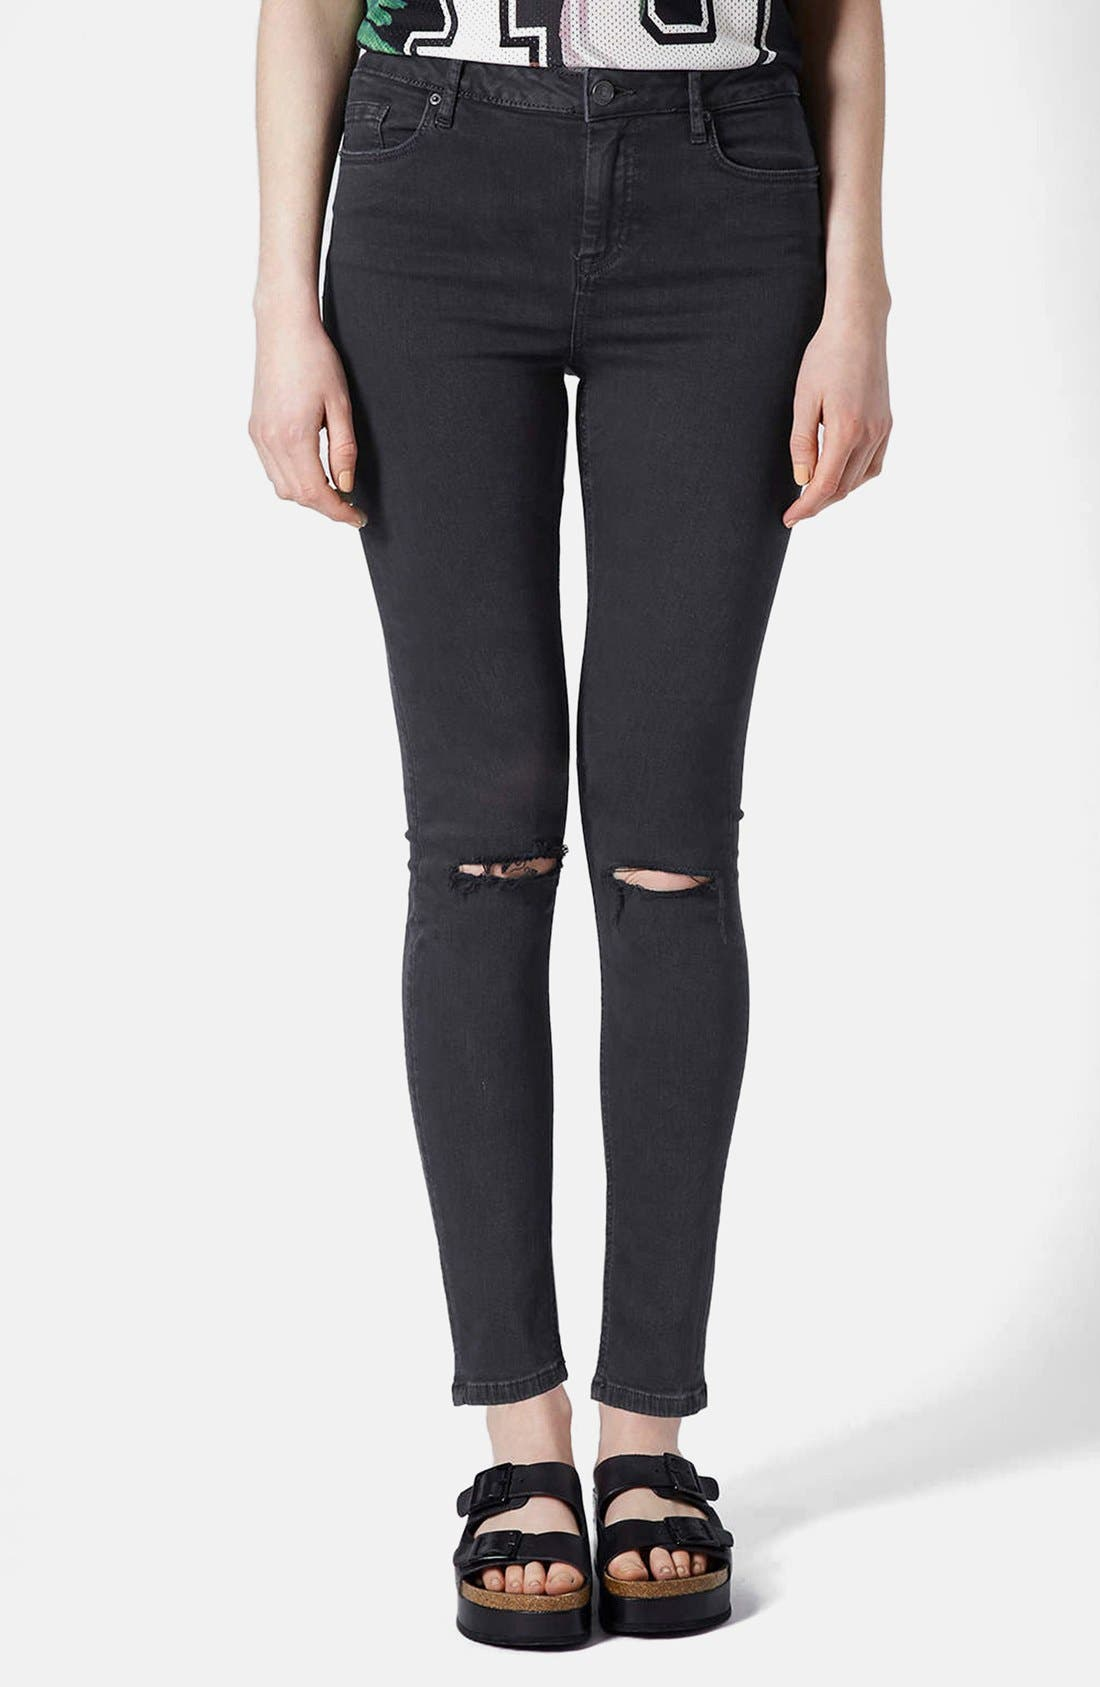 Alternate Image 1 Selected - Topshop Moto 'Jamie' Ripped High Rise Ankle Skinny Jeans (Black) (Regular & Short)